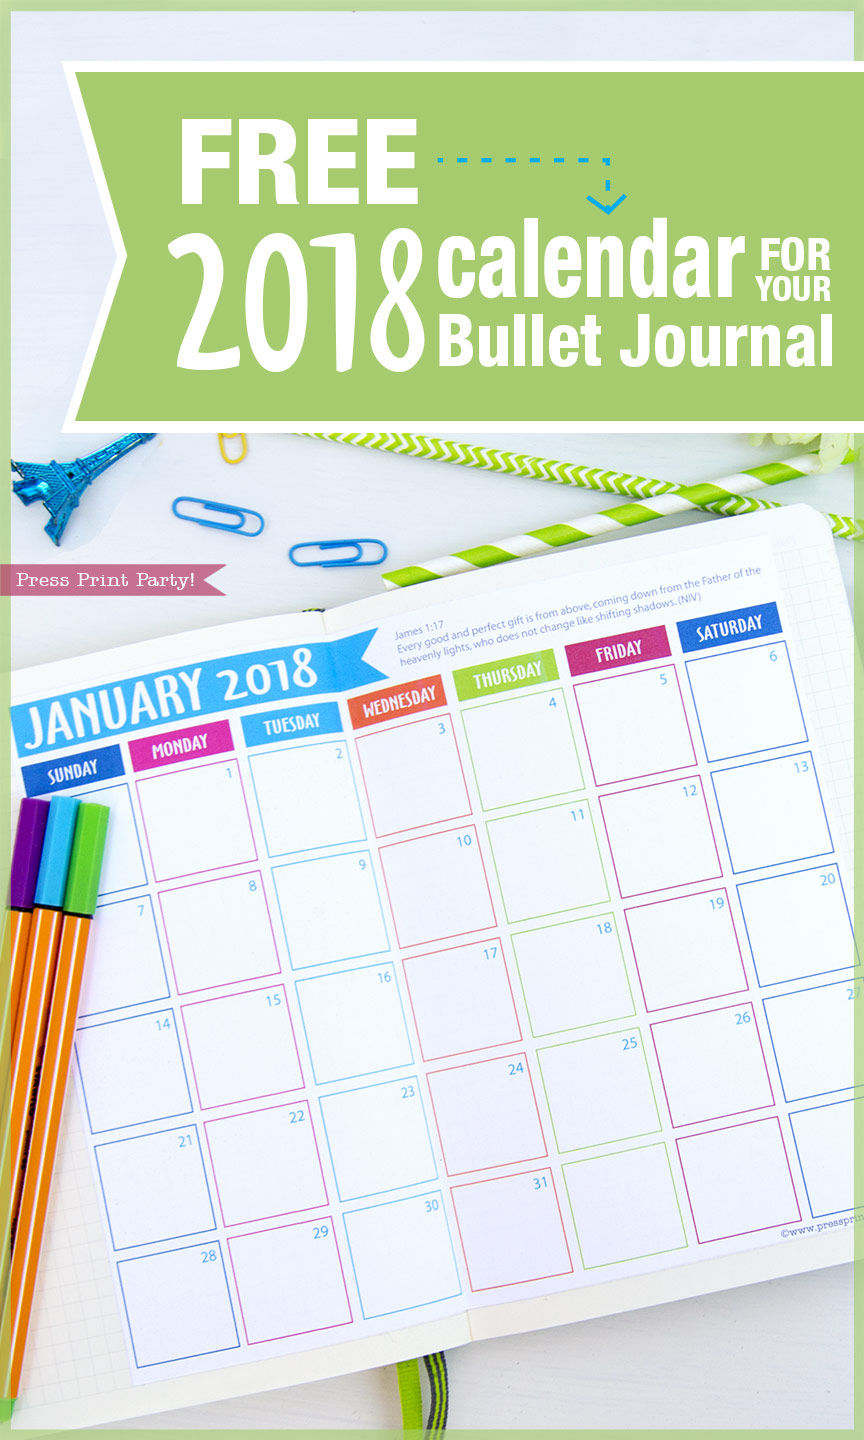 Calendar Bullet Journal 2018 : Free calendar for you bullet journal by press print